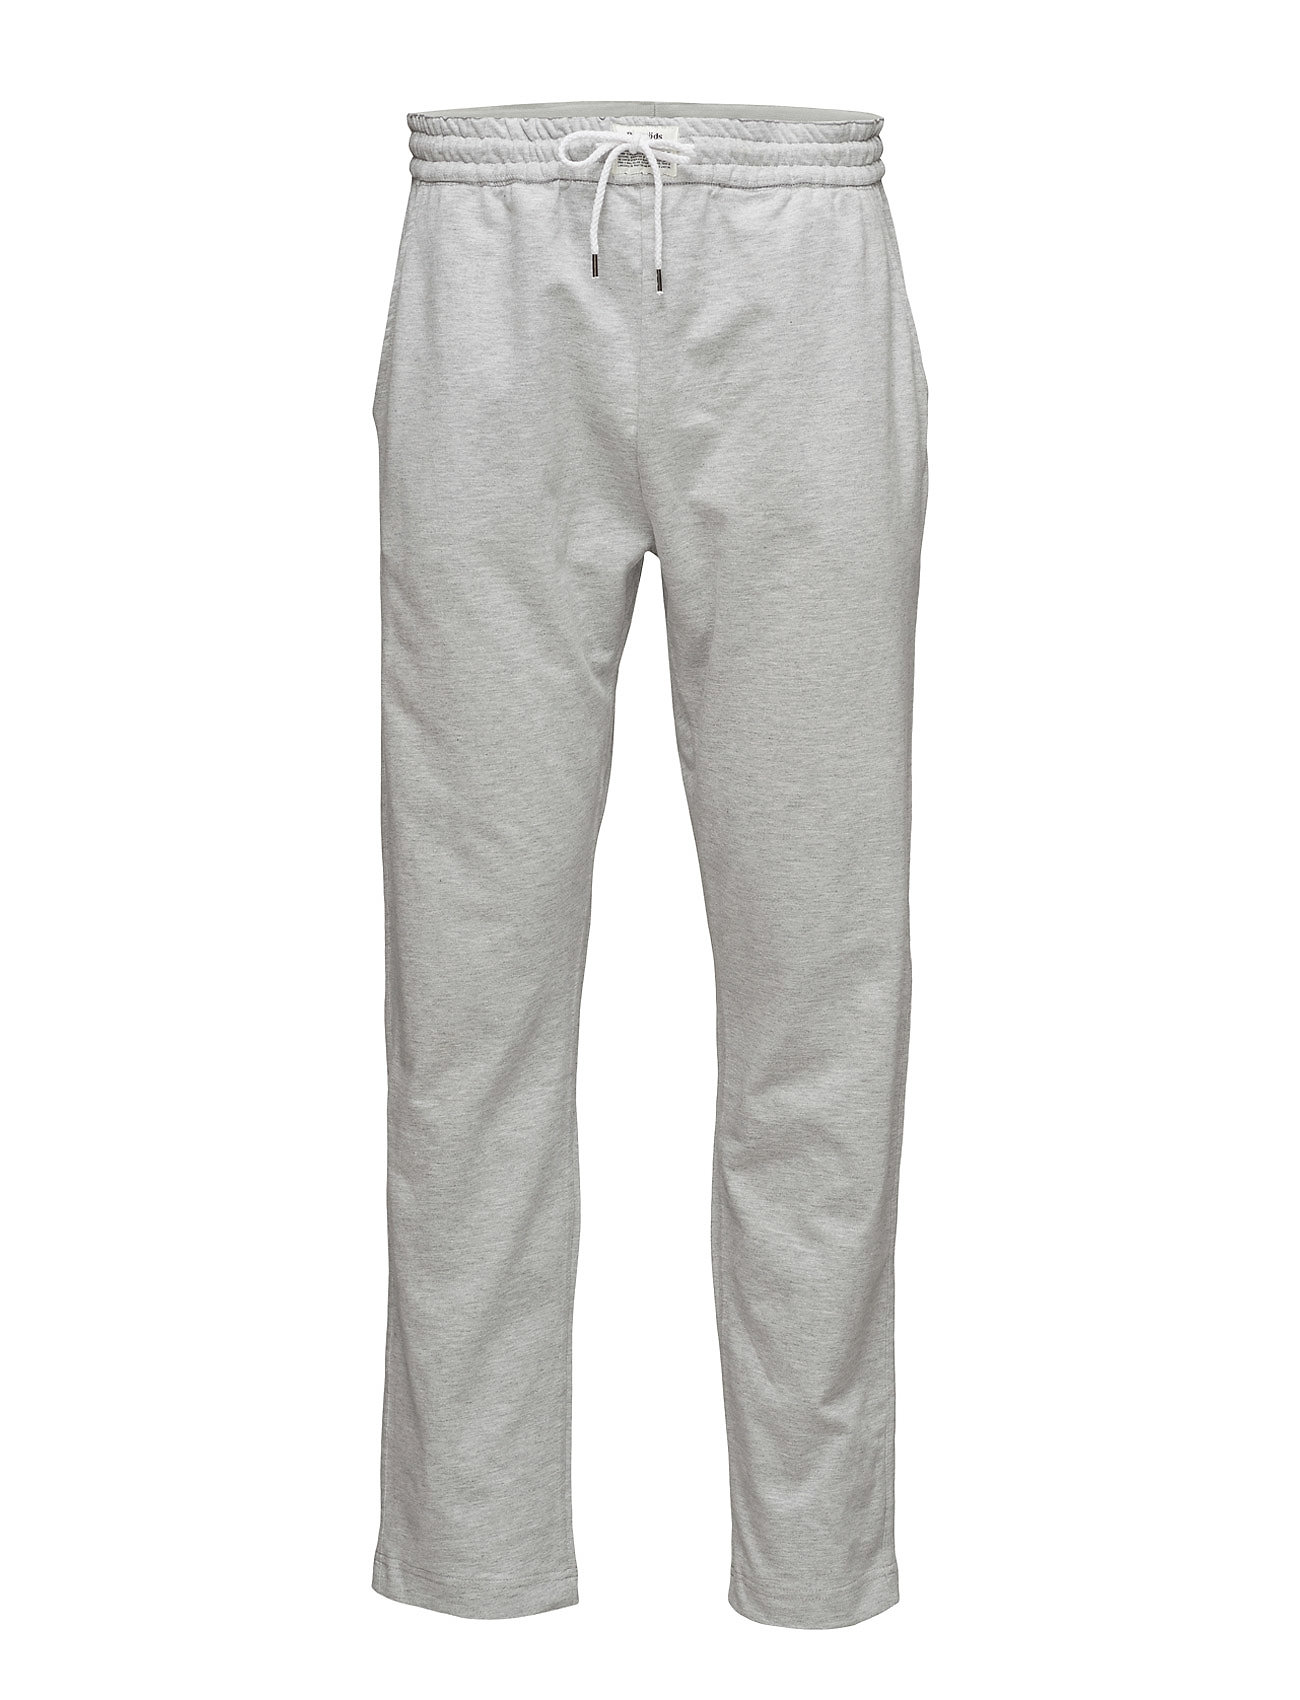 Resteröds Original Sweat Pant - GREY MEL.